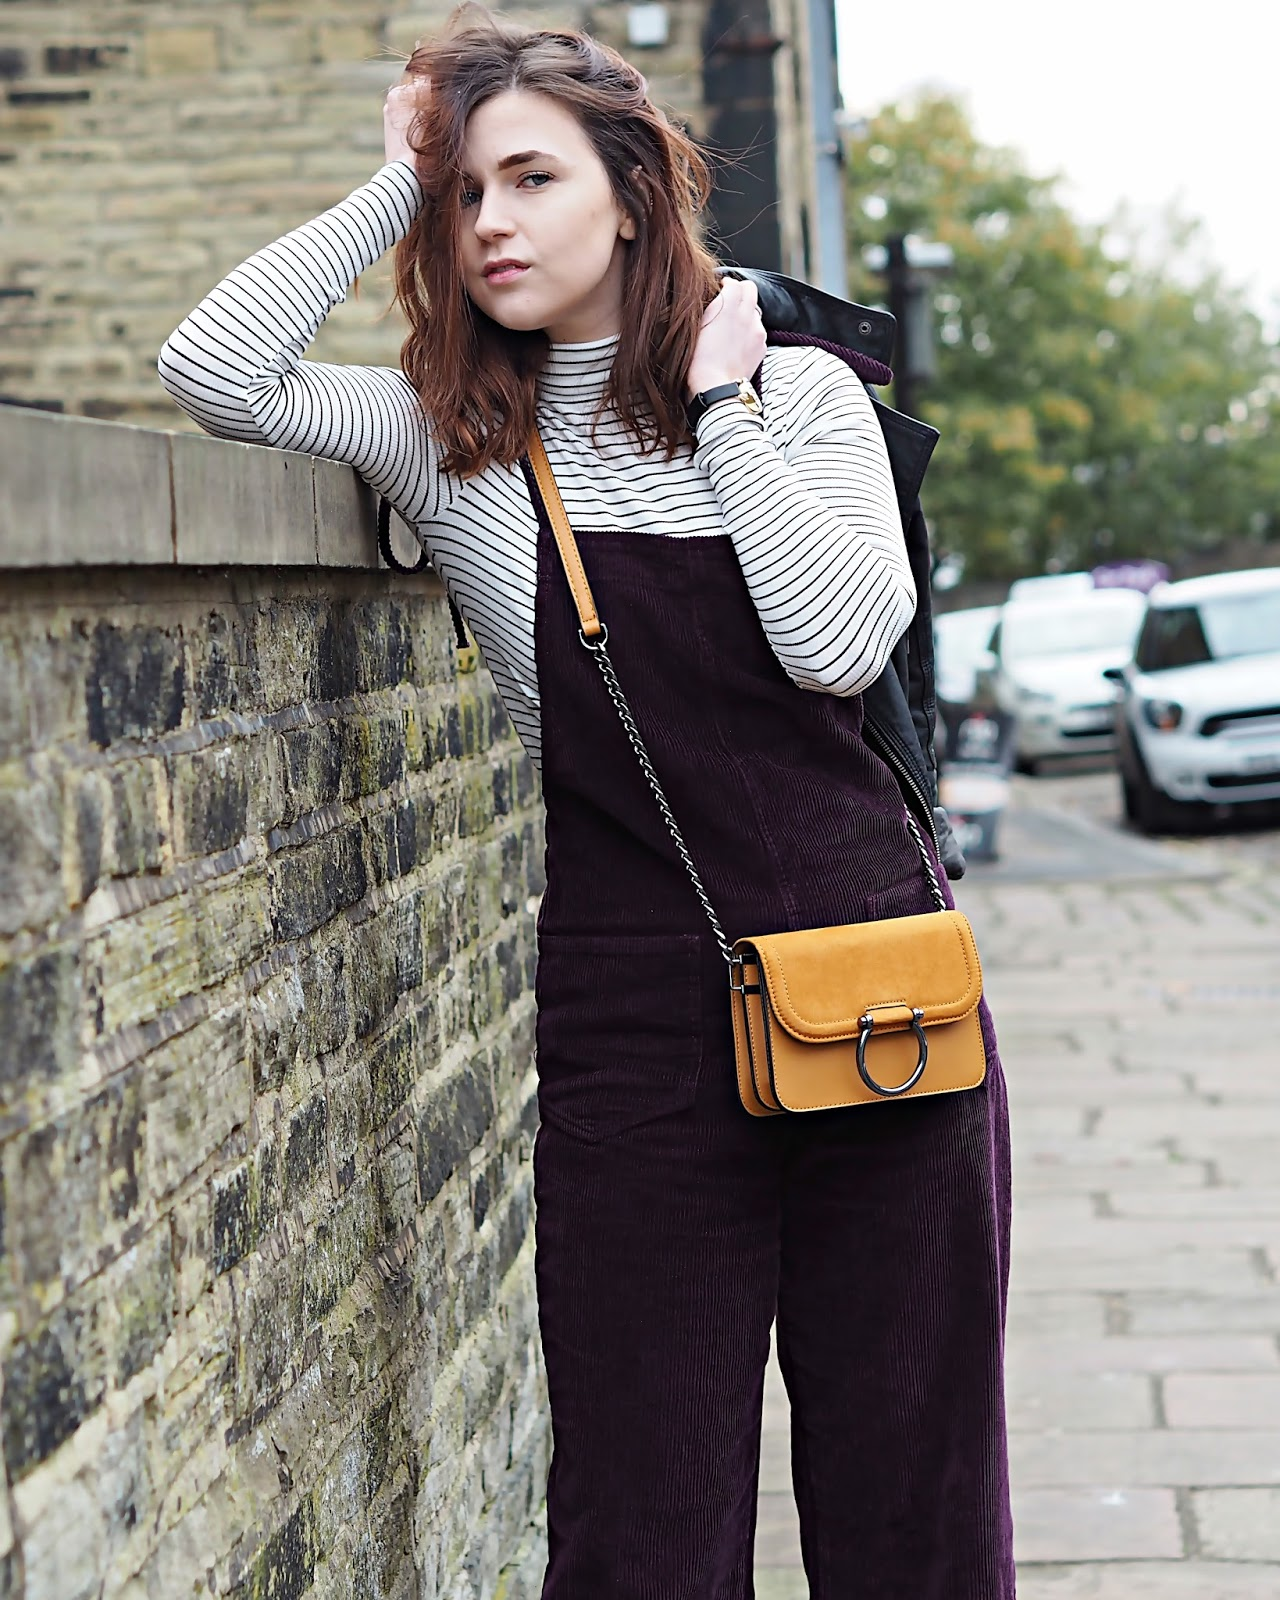 stripe top & mustard bag